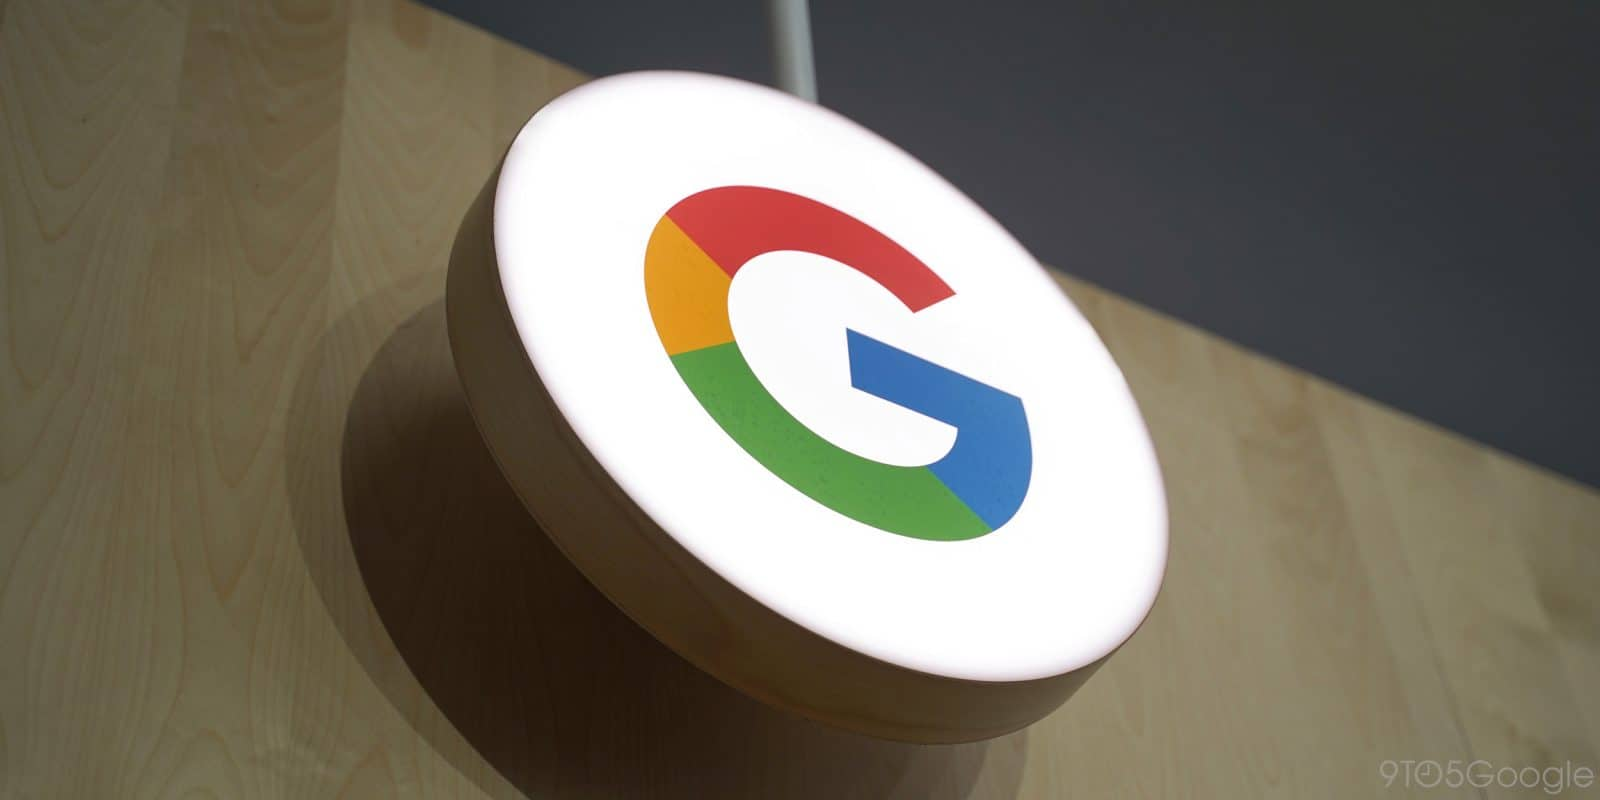 What You Need To Know About Google's Latest Updates